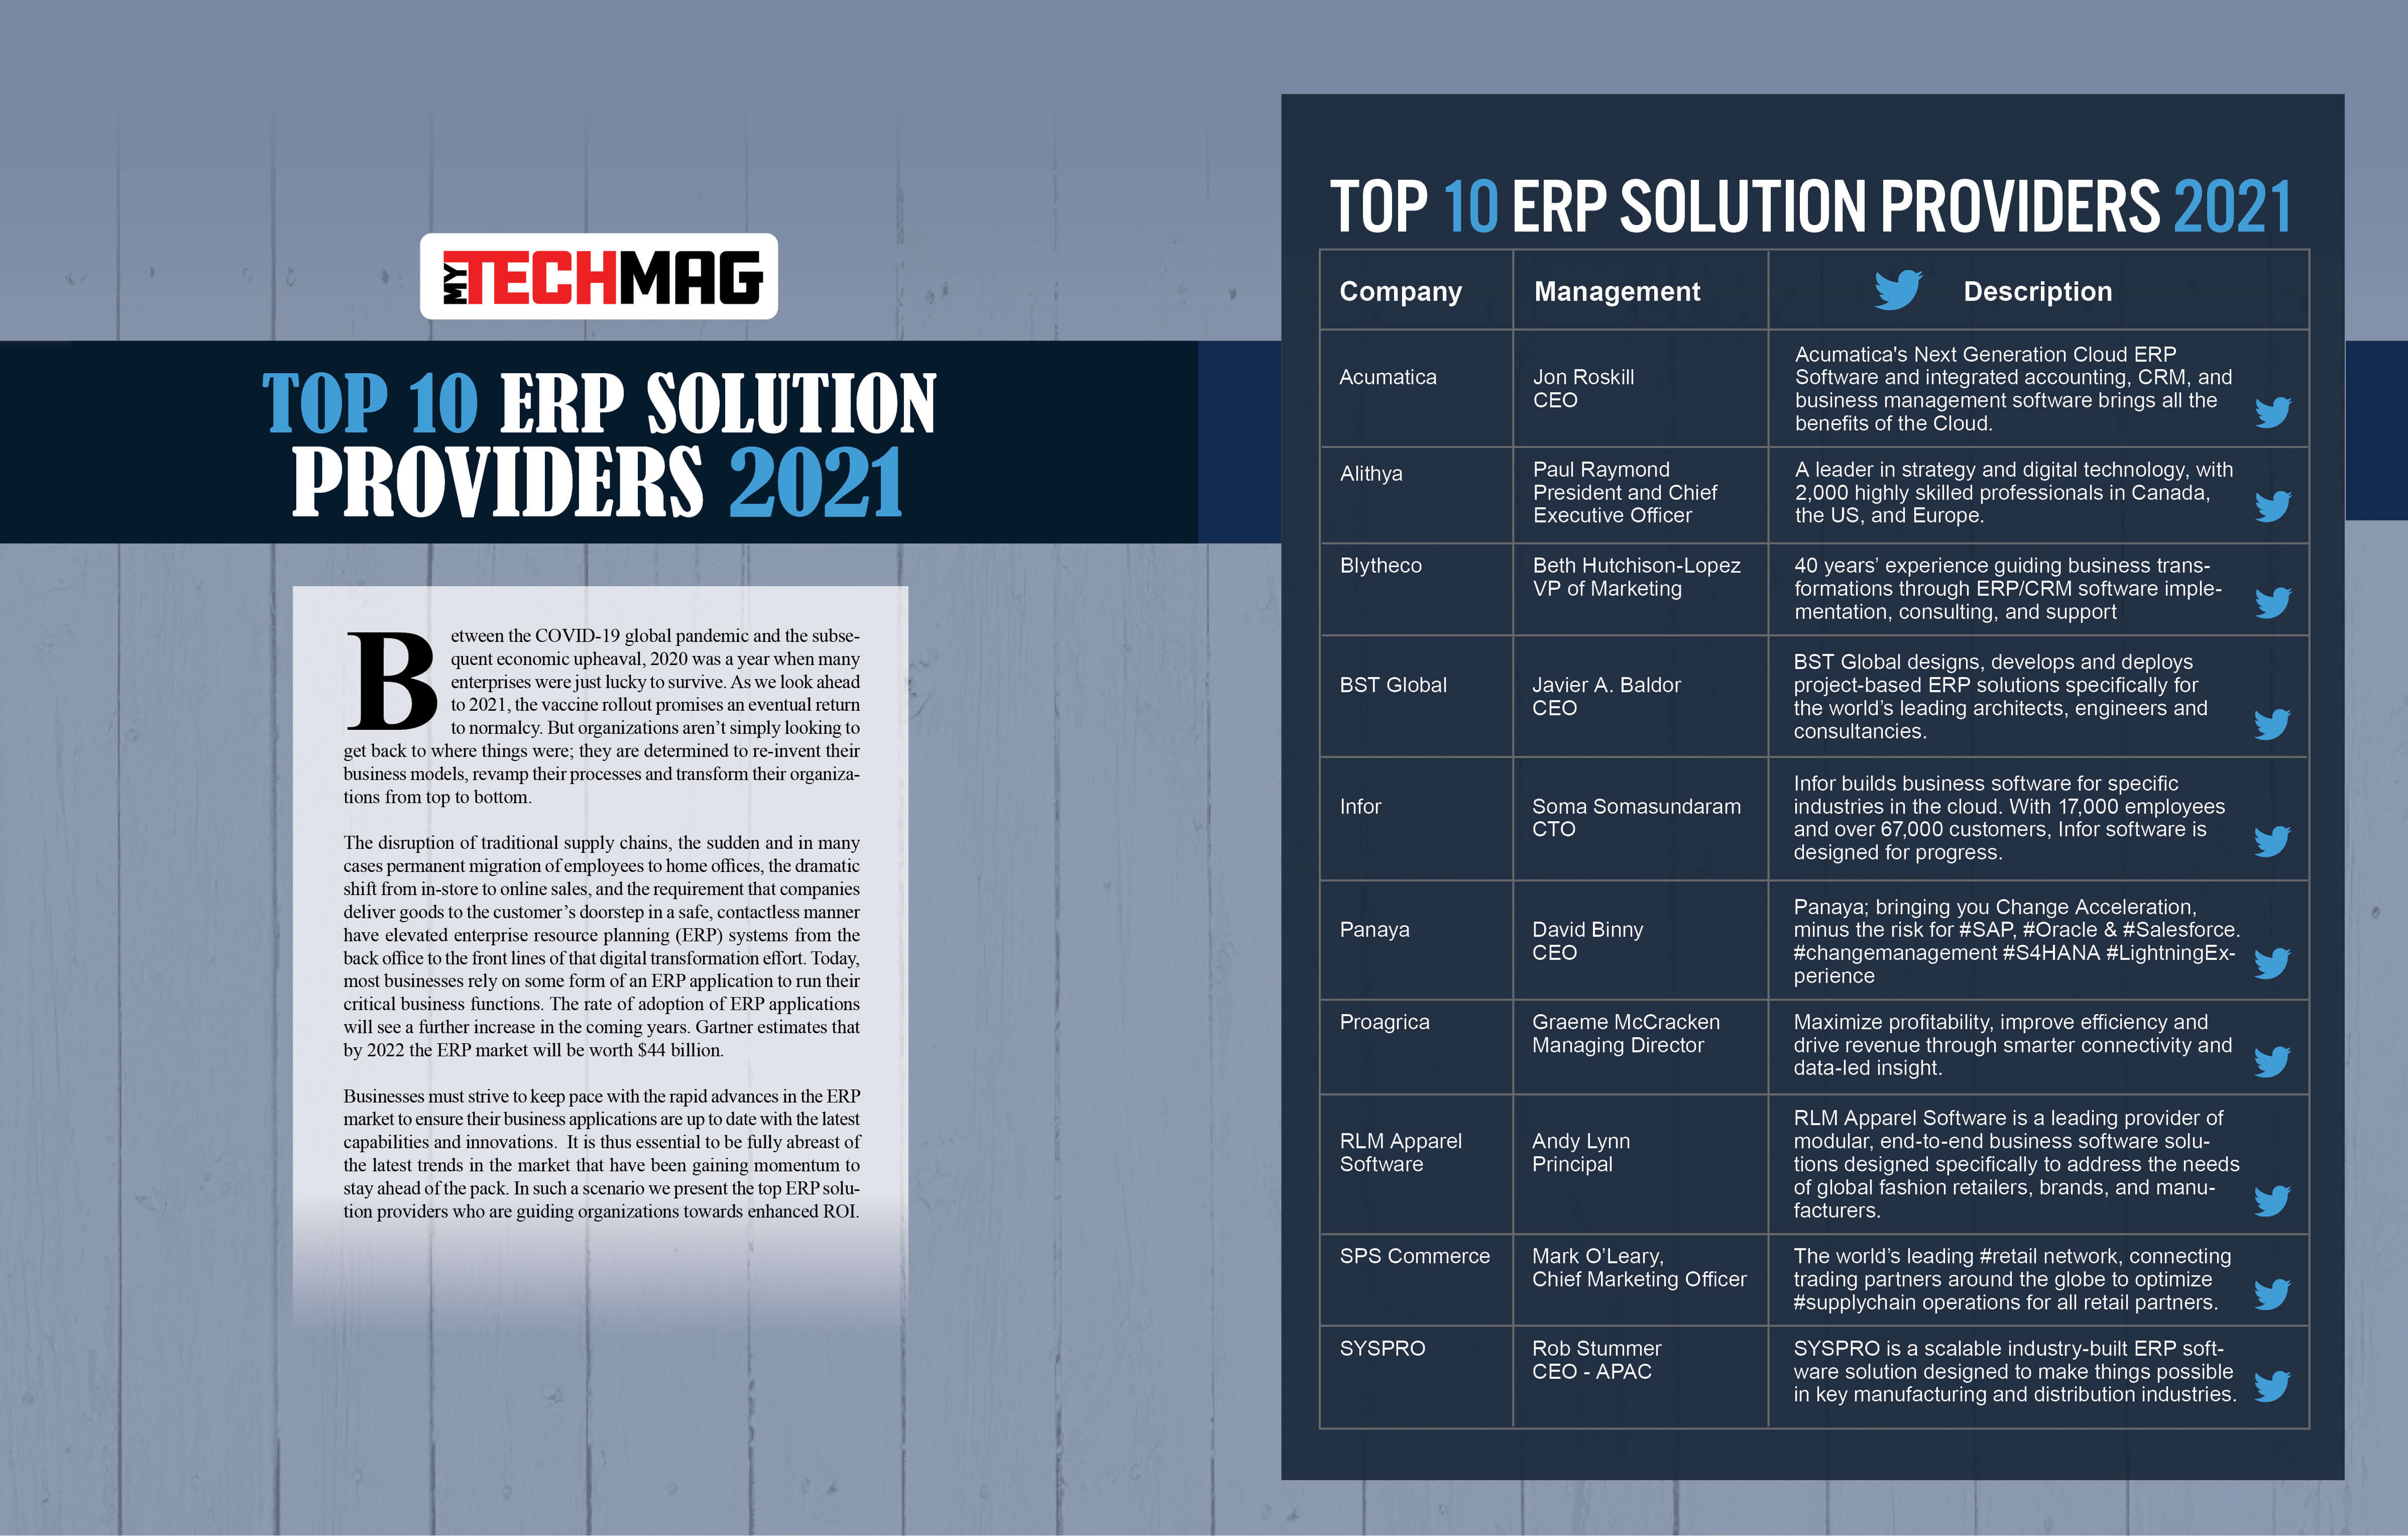 Top 10 ERP Solution Providers 2021